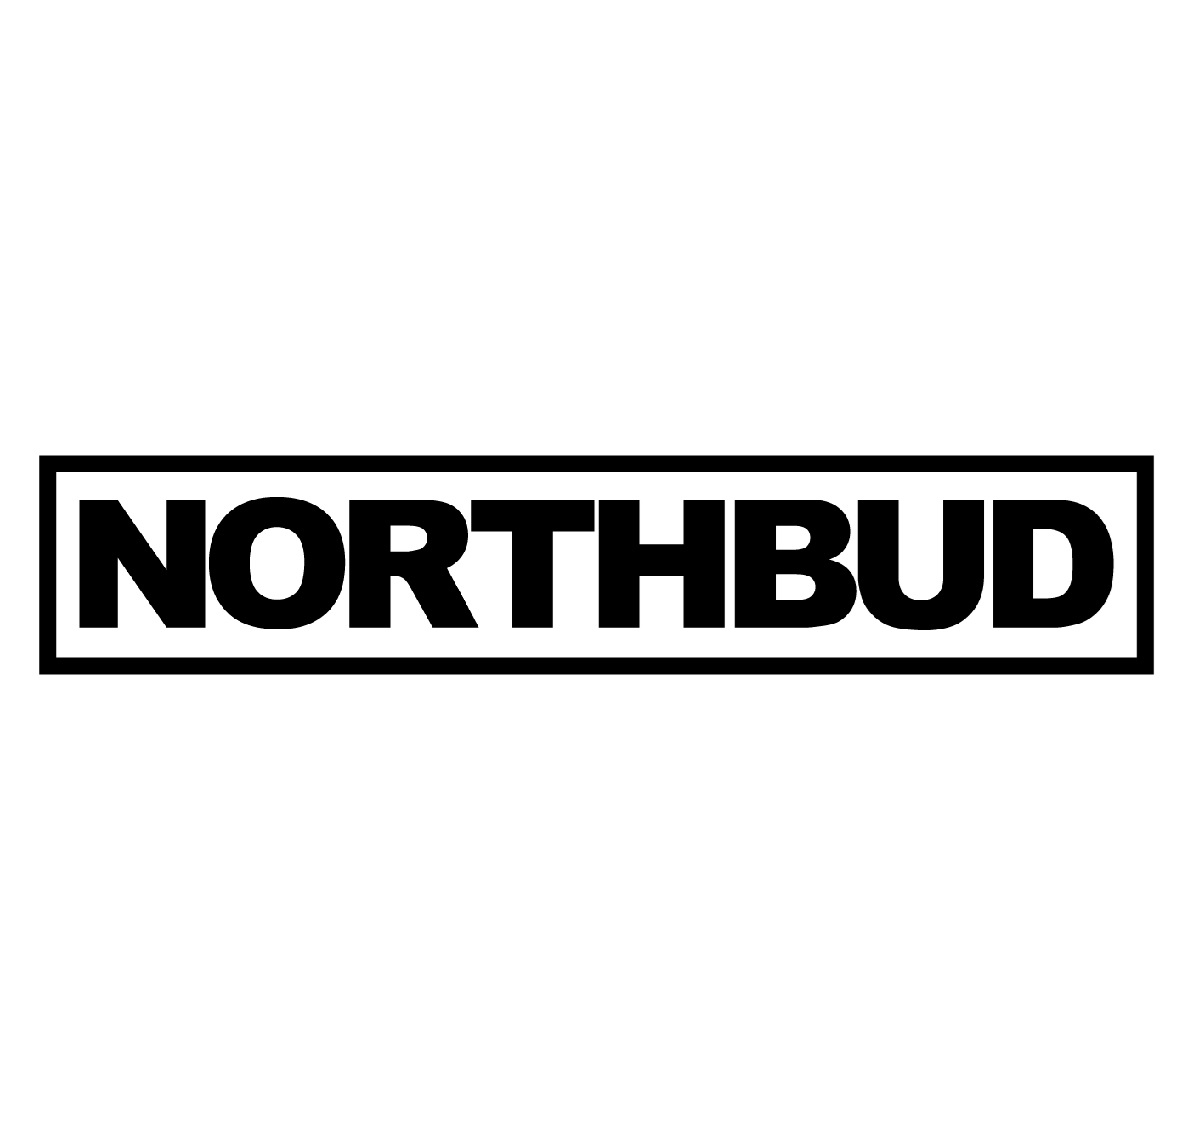 North Bud Farms Announces Expected Delay in Filing Annual Financial Statements